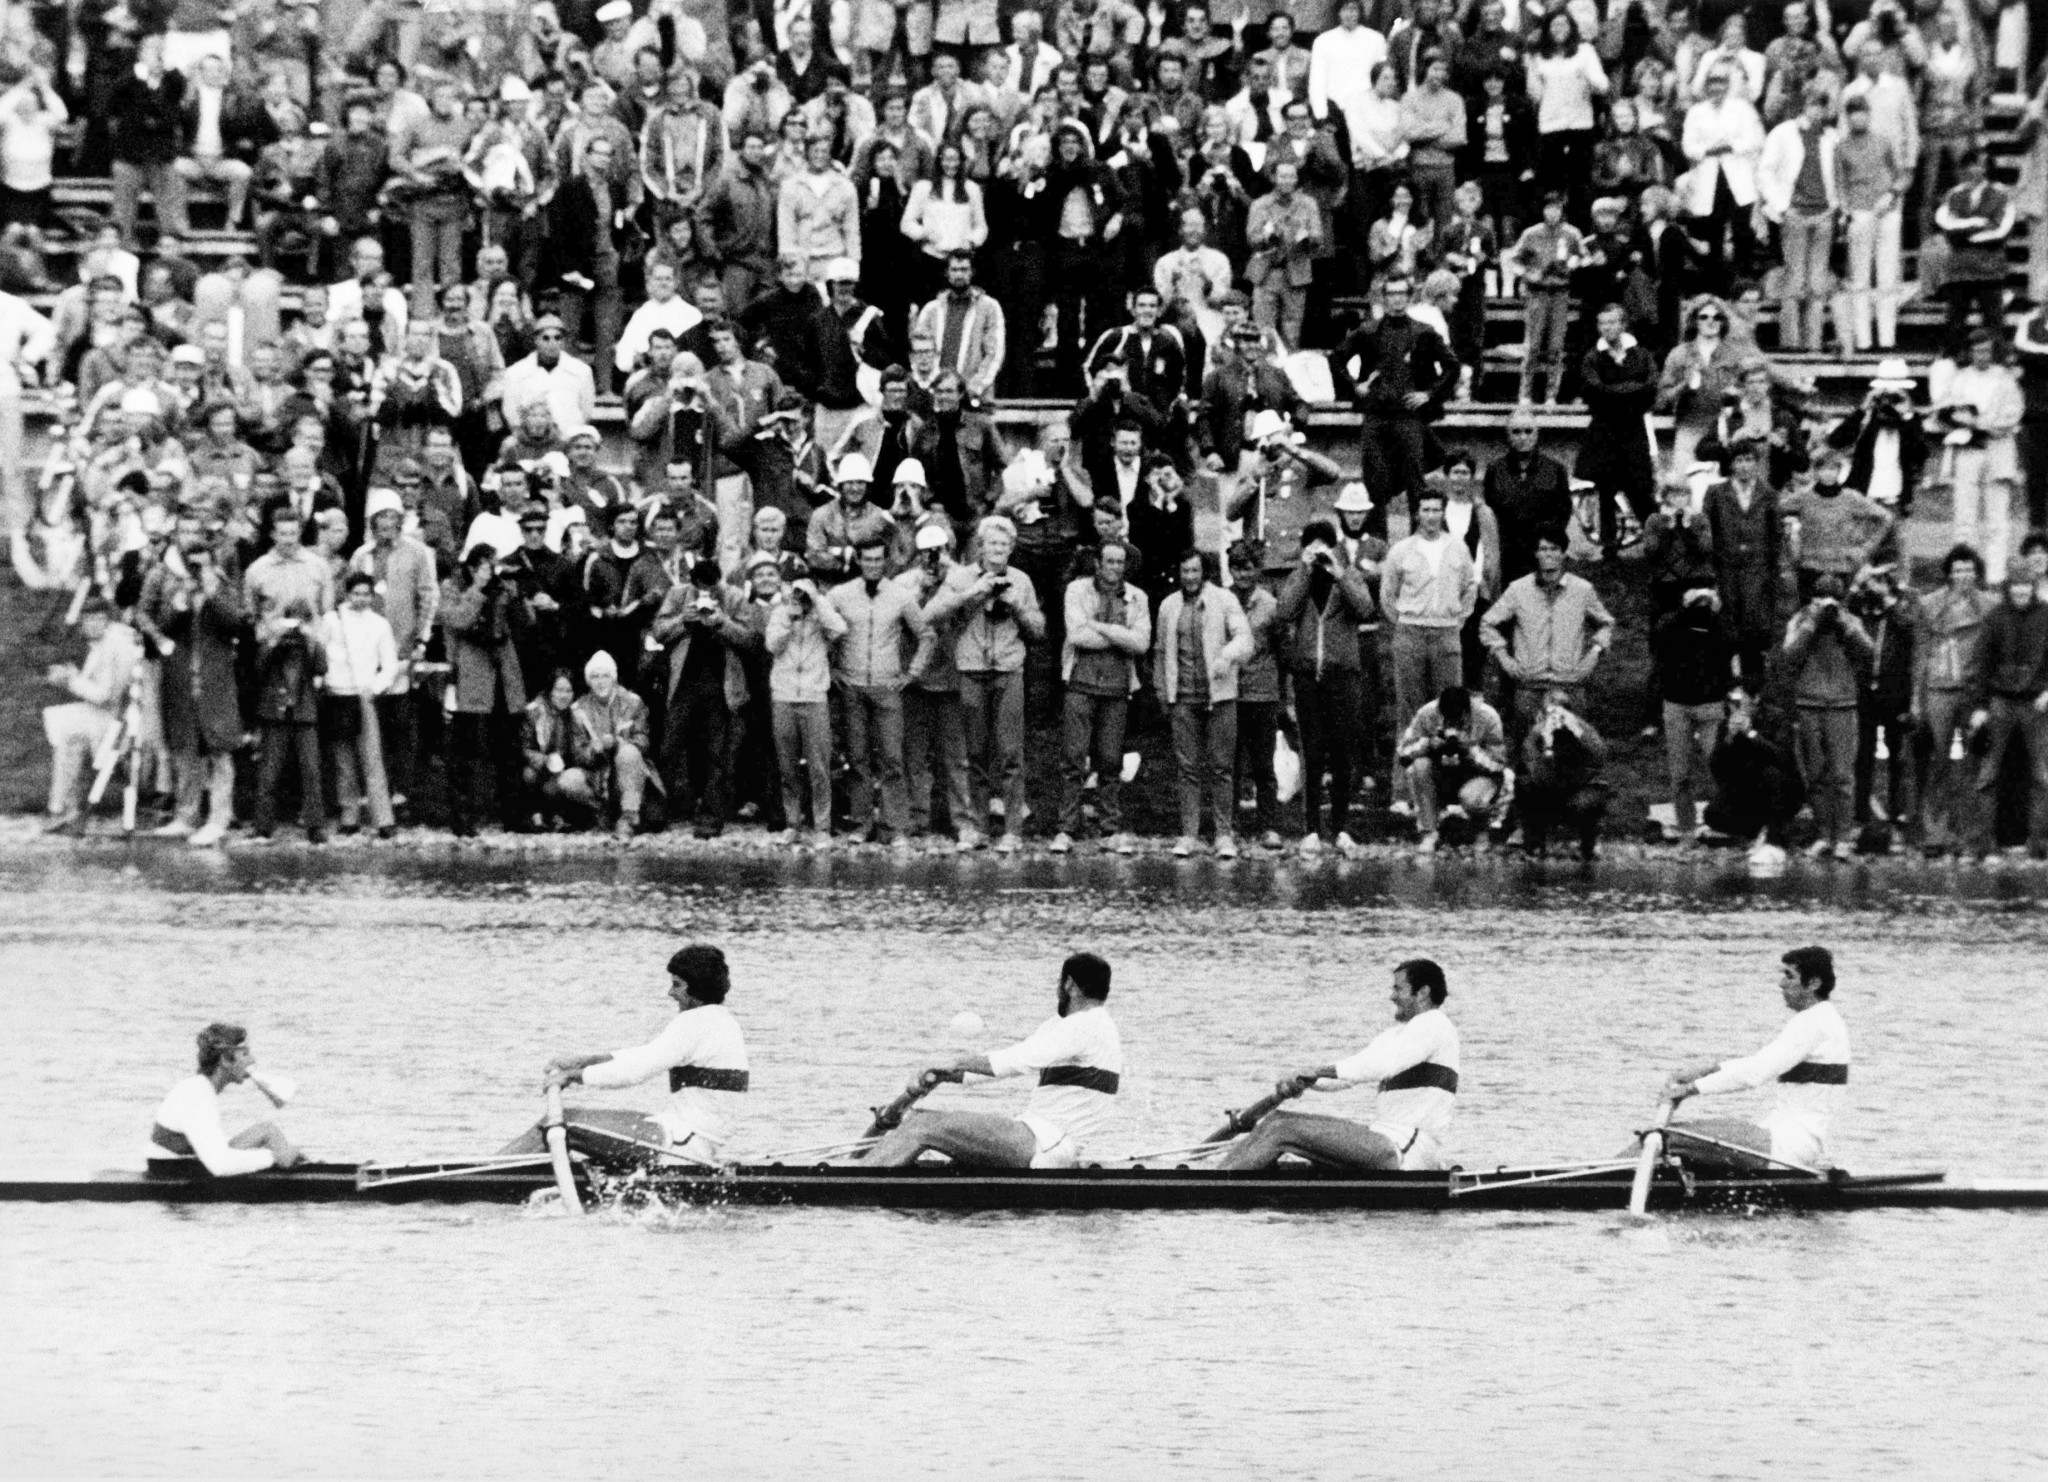 The regatta course in Oberschleißheim staged rowing competitions during the Munich 1972 Olympic Games ©Getty Images